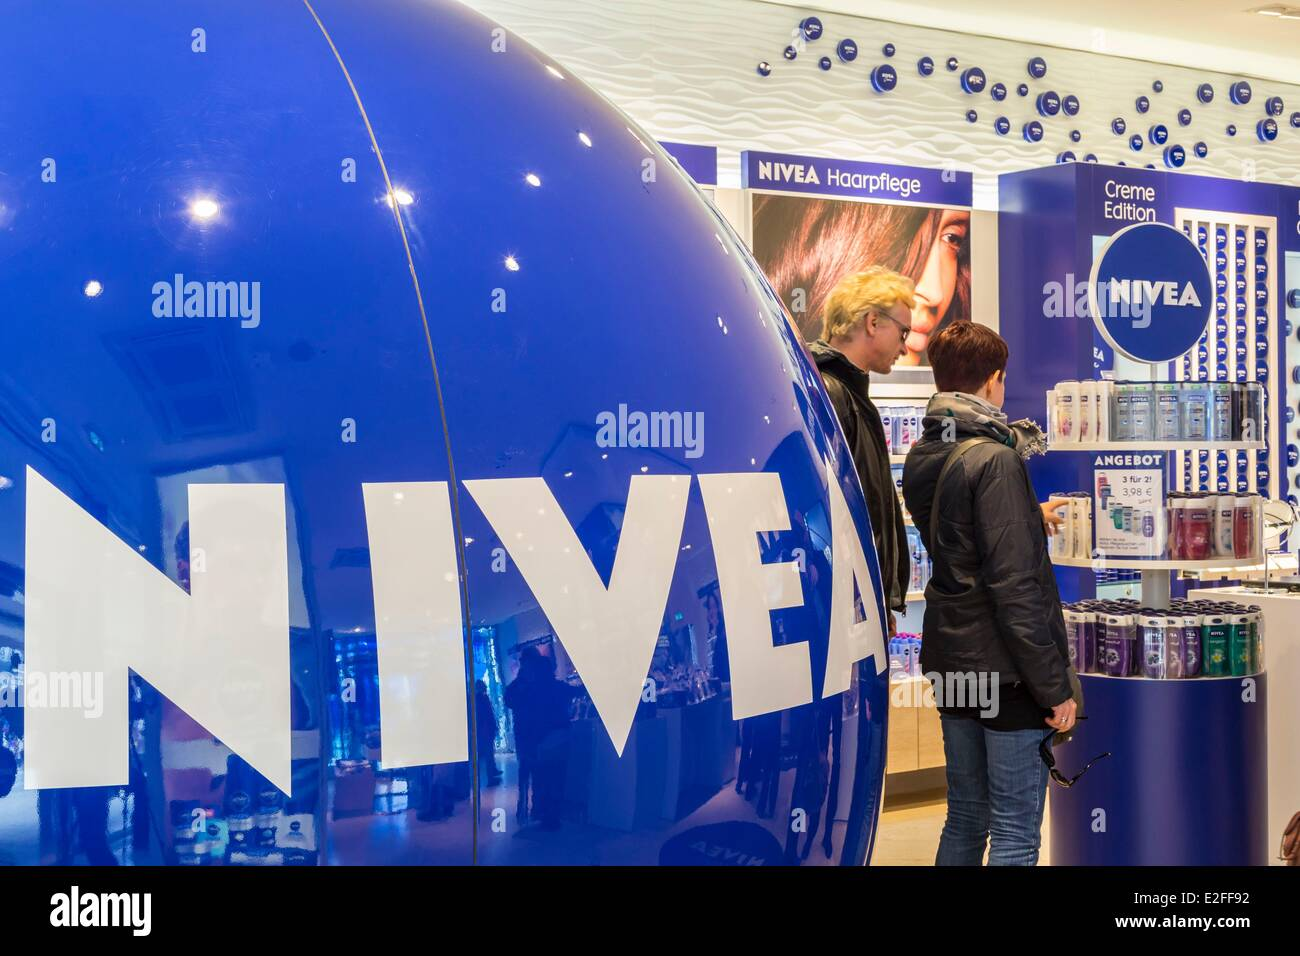 Stock Photo - Germany, Hamburg, Nivea Haus, Nivea brand was founded locally in 1911 and belongs to the German group Beiersdorf